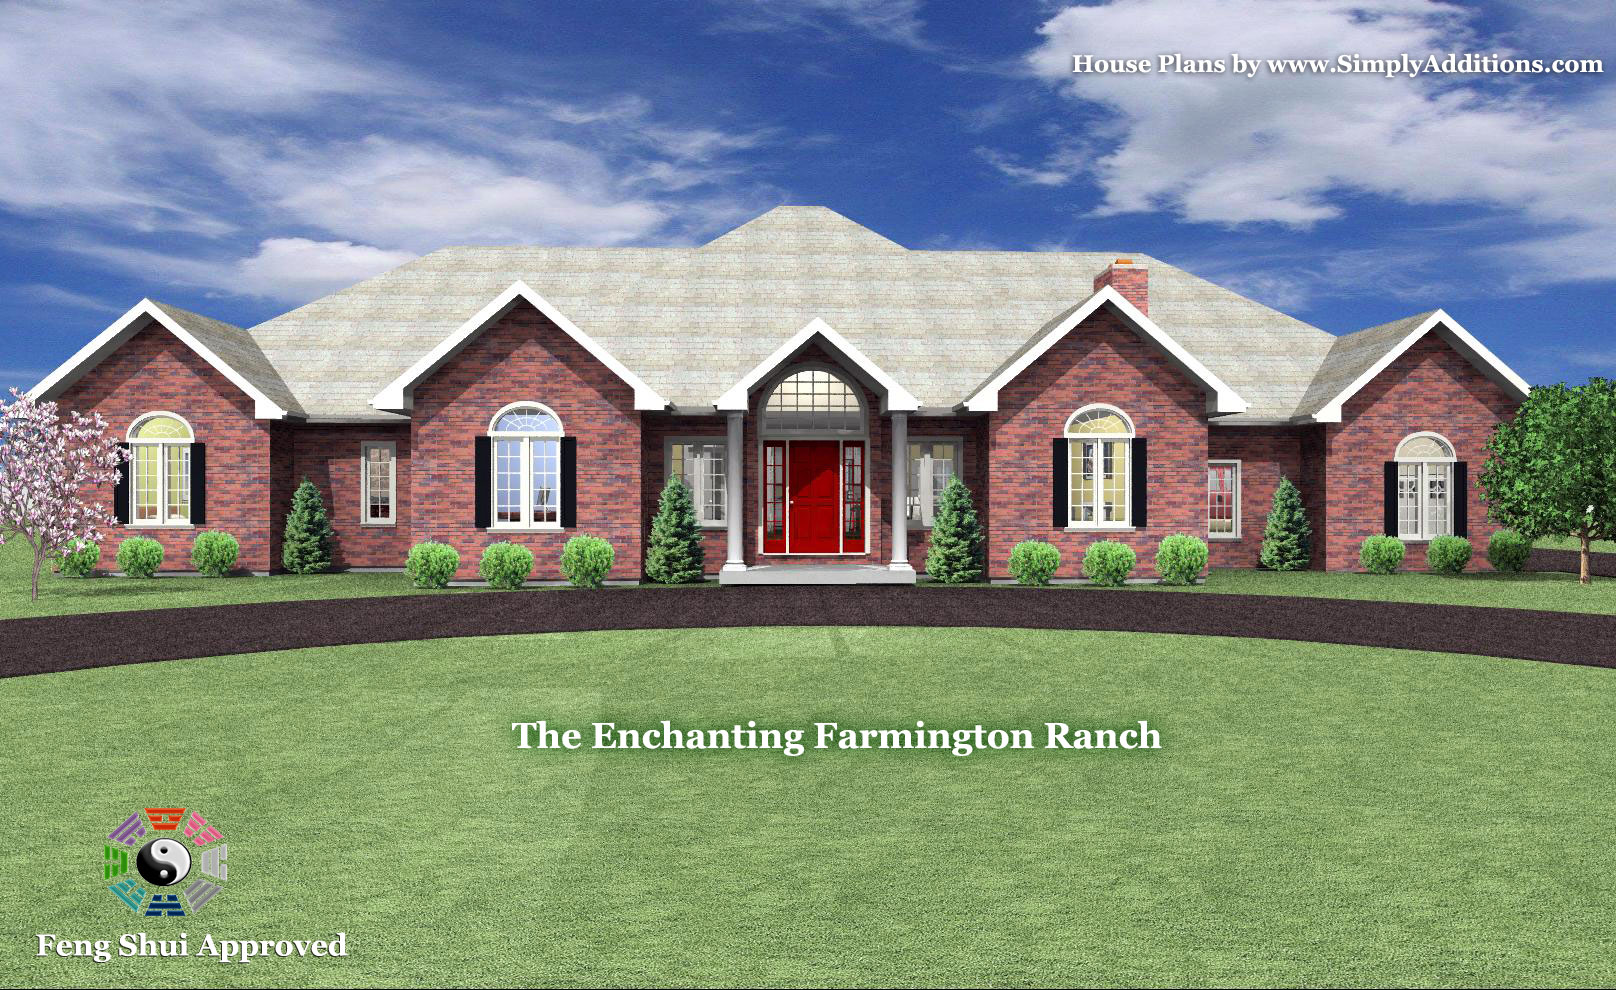 Cool Ranch Style House Additions. The Enchanting Farmlington Ranch House Plans Farmington Plan